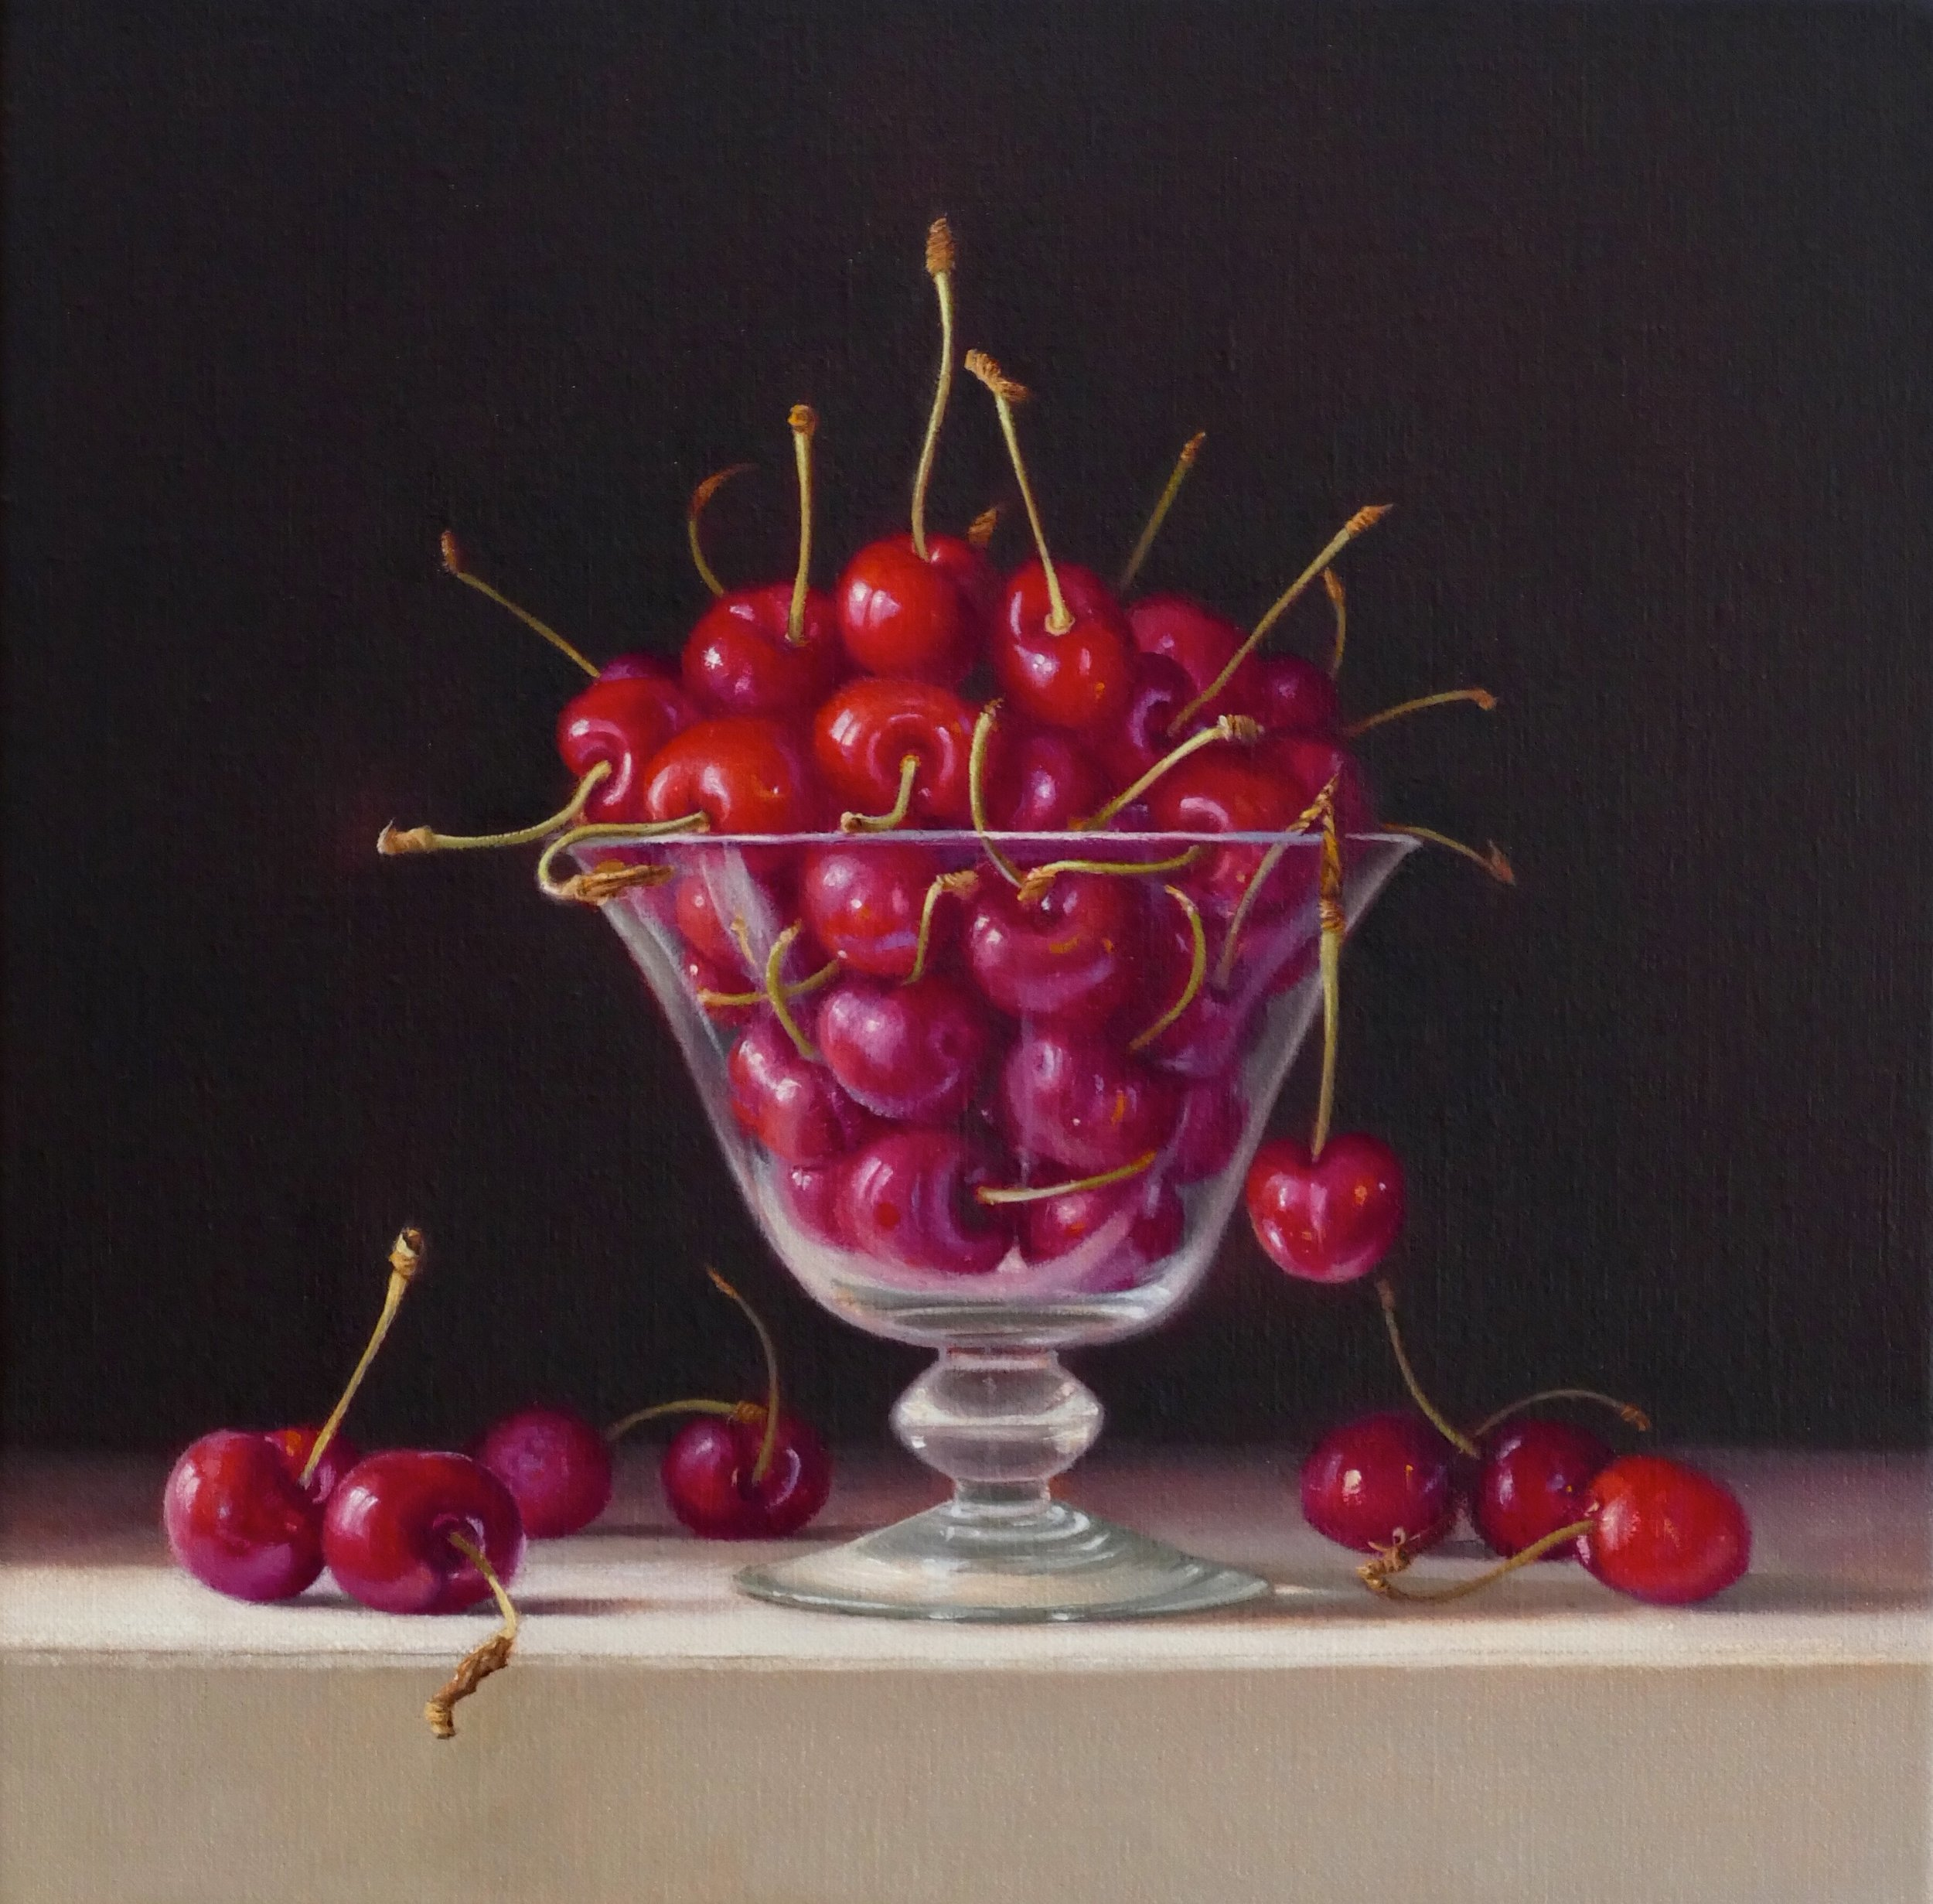 Cherries. 30x30cm. Oil on linen. Private Collection